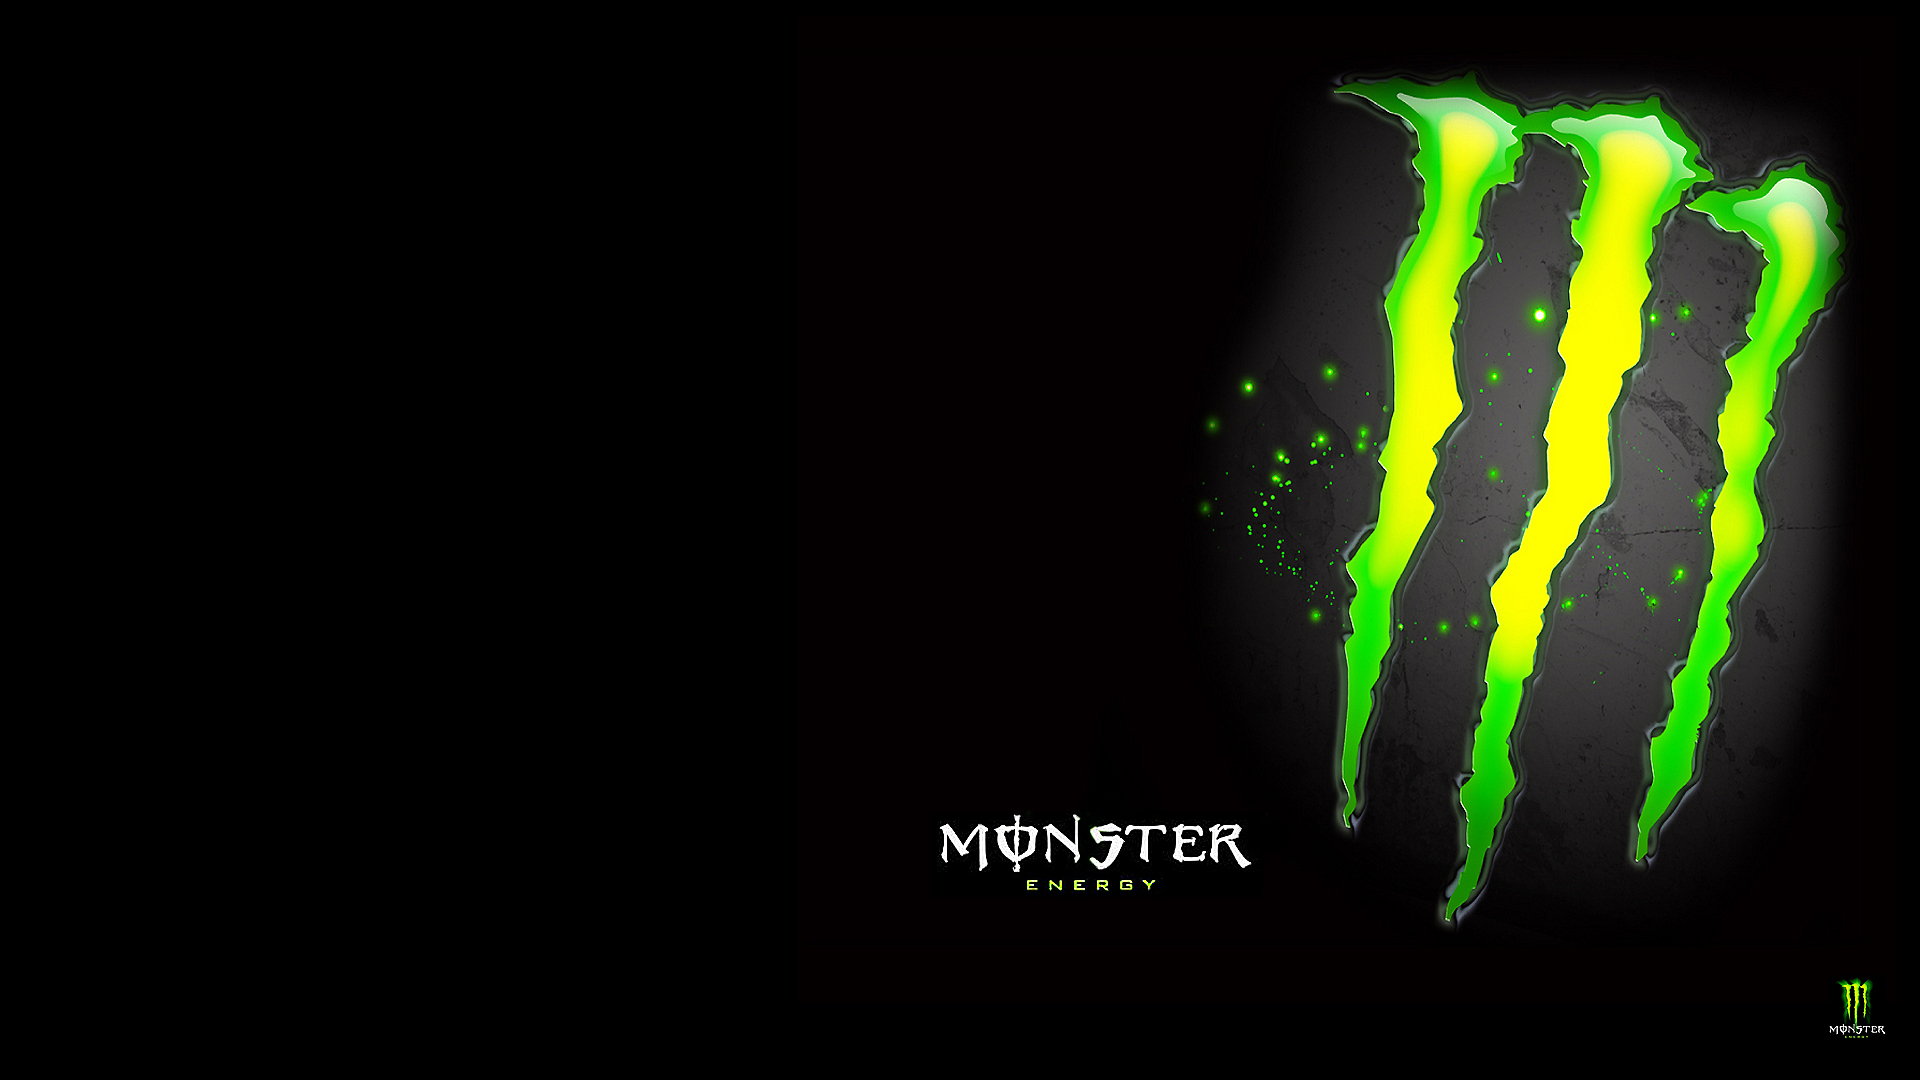 On Wallpapers Energy Drinks Background Monster Energy 1920x1080